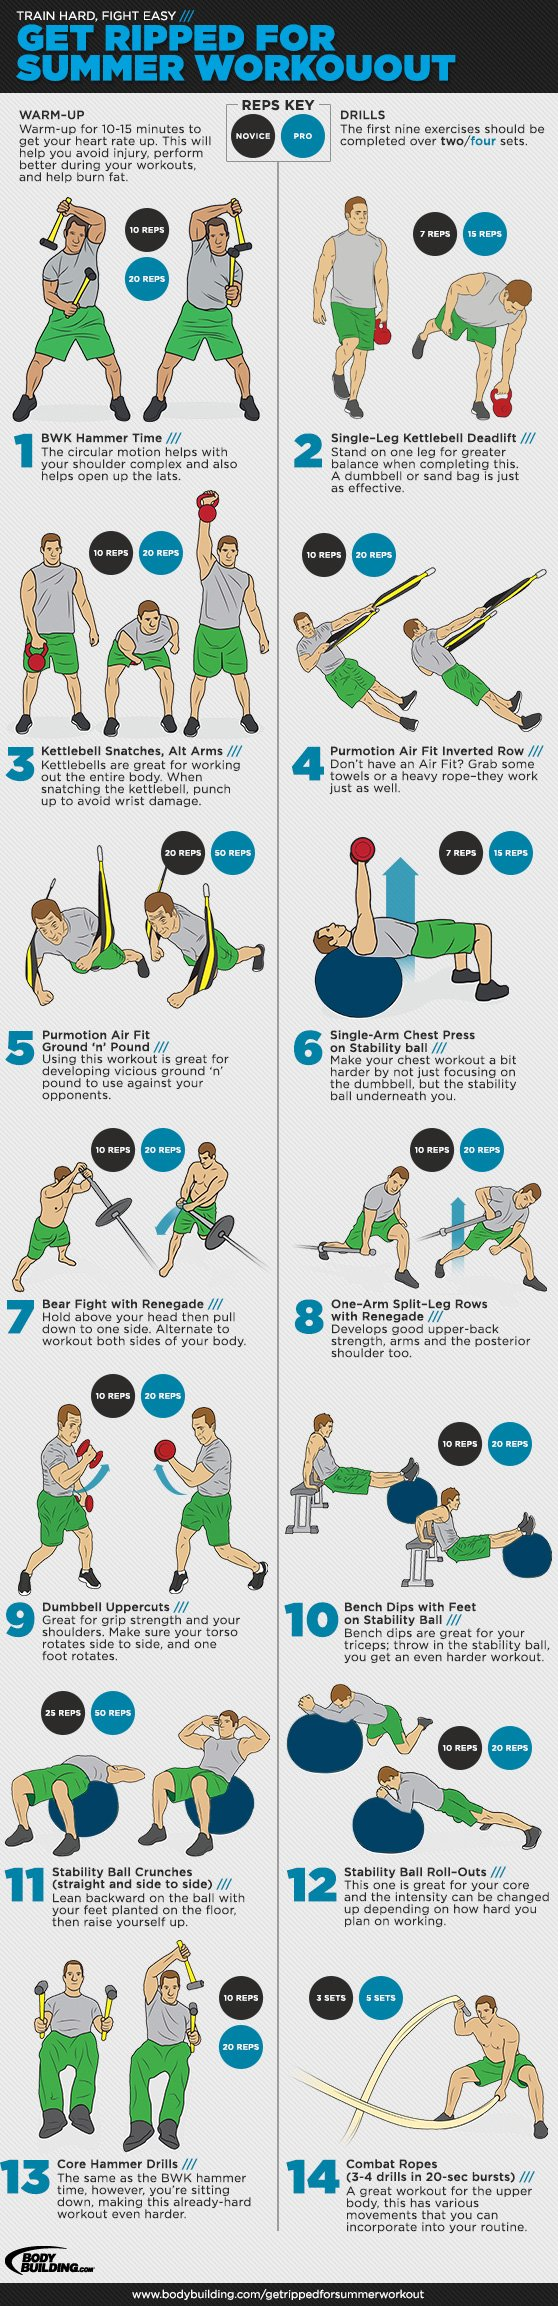 Get Ripped For Summer With Dynamic Bodybuilding Drills